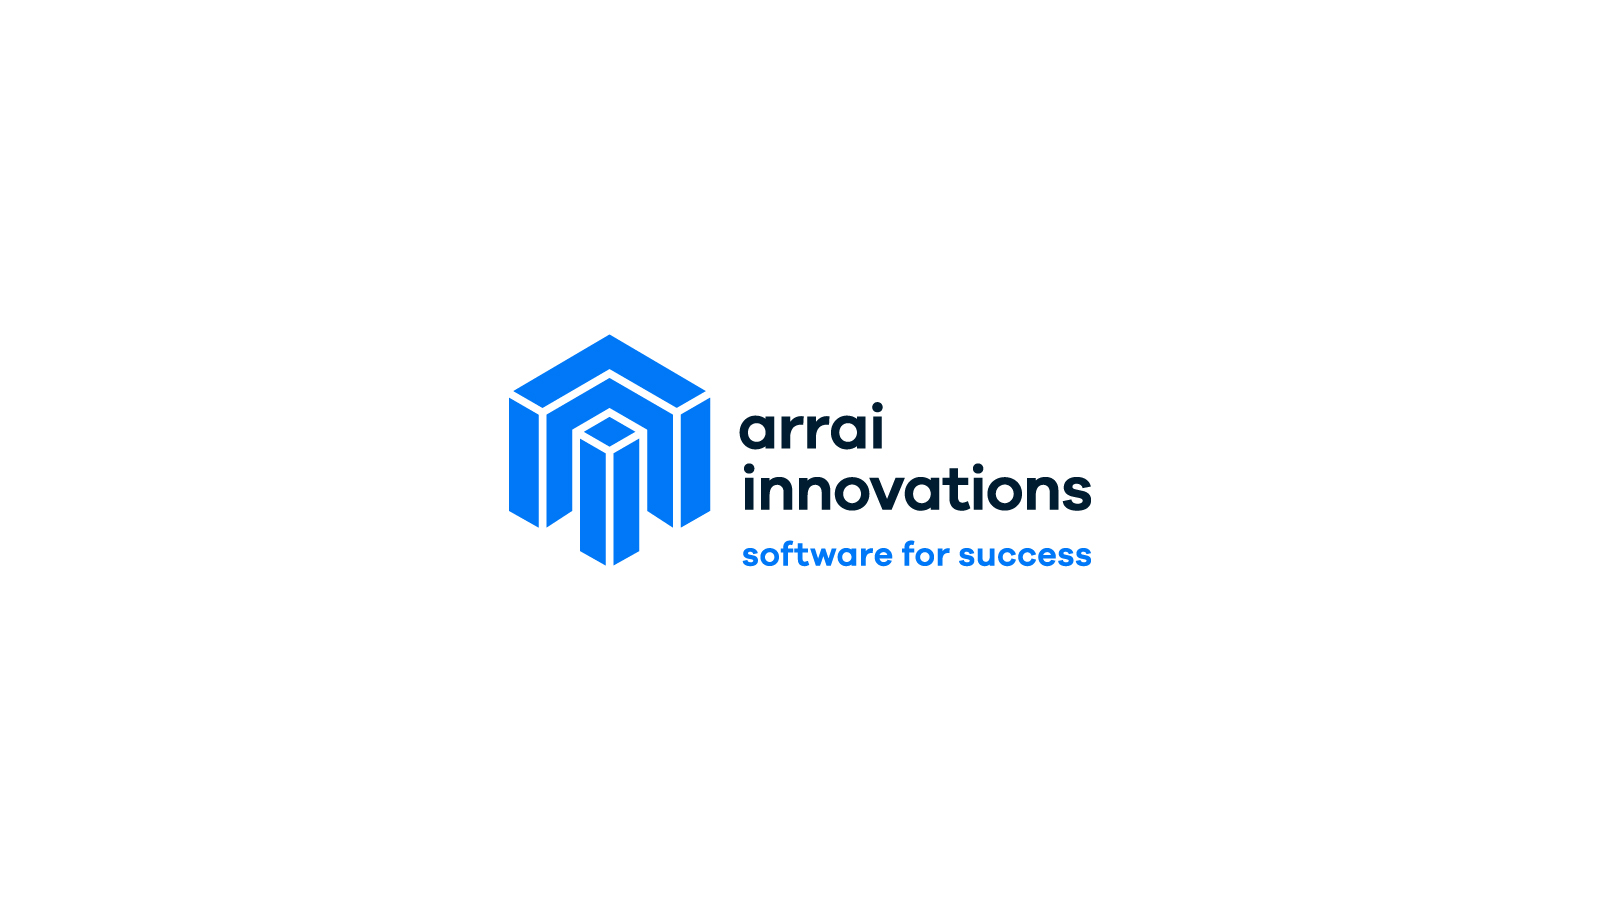 arrai_innovations_brand_themetportfolio-01.jpg